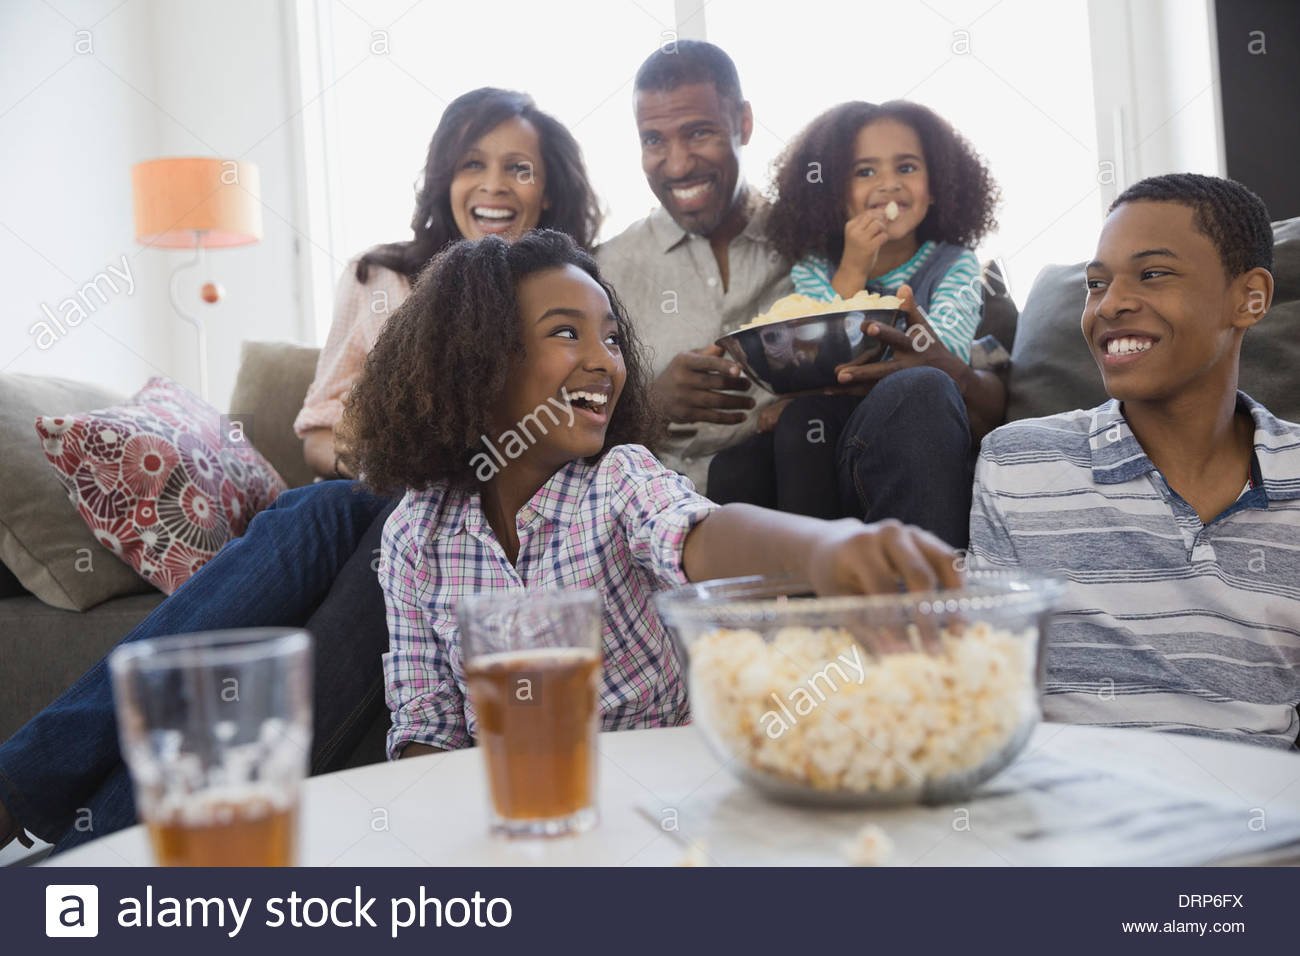 Family watching television together at home - Stock Image